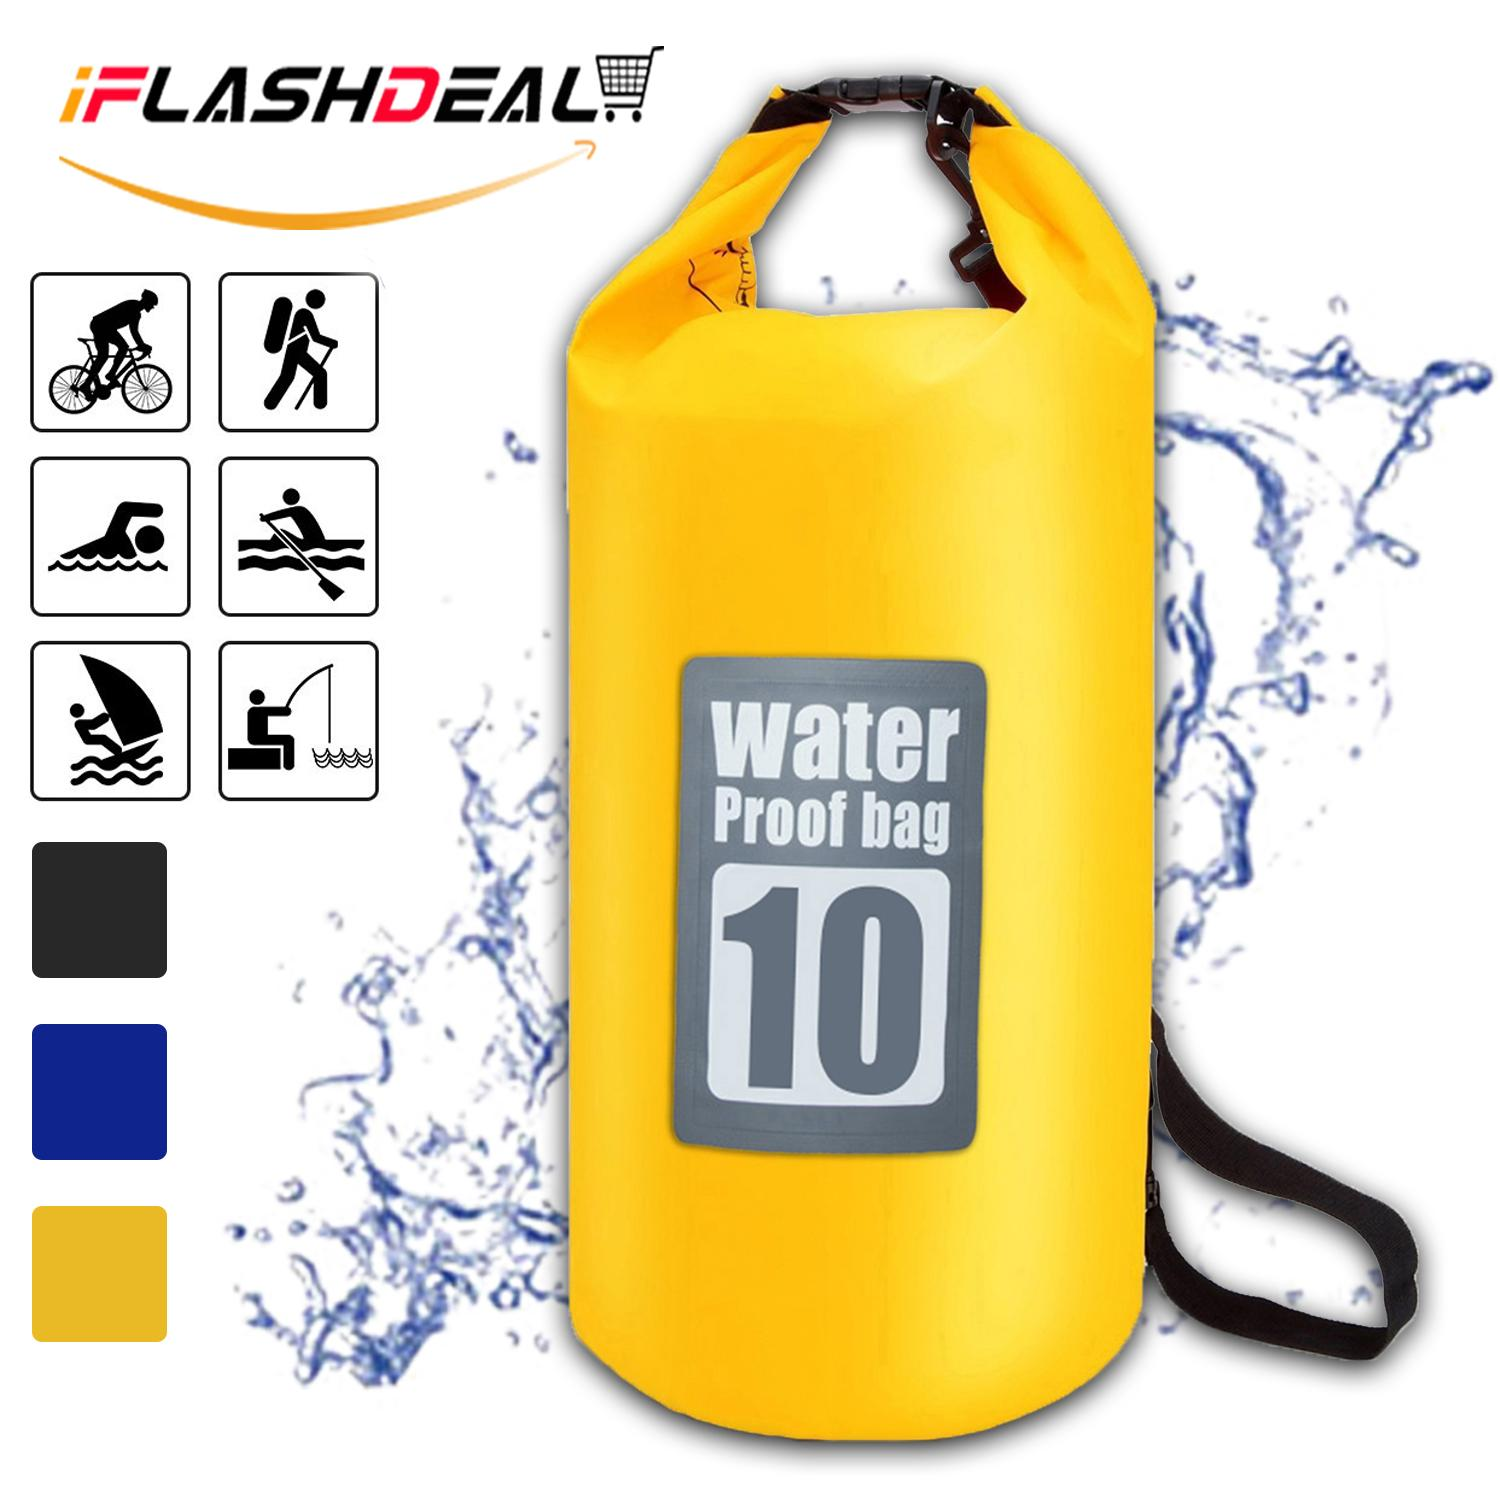 Iflashdeal Waterproof Roll Top Dry Bag Floating Dry Compression Sack Keeps Gear Dry For Kayaking, Canoeing, Beach, Rafting, Boating, Snowboarding, Hiking, Camping And Fishing 10 L By Iflashdeal.